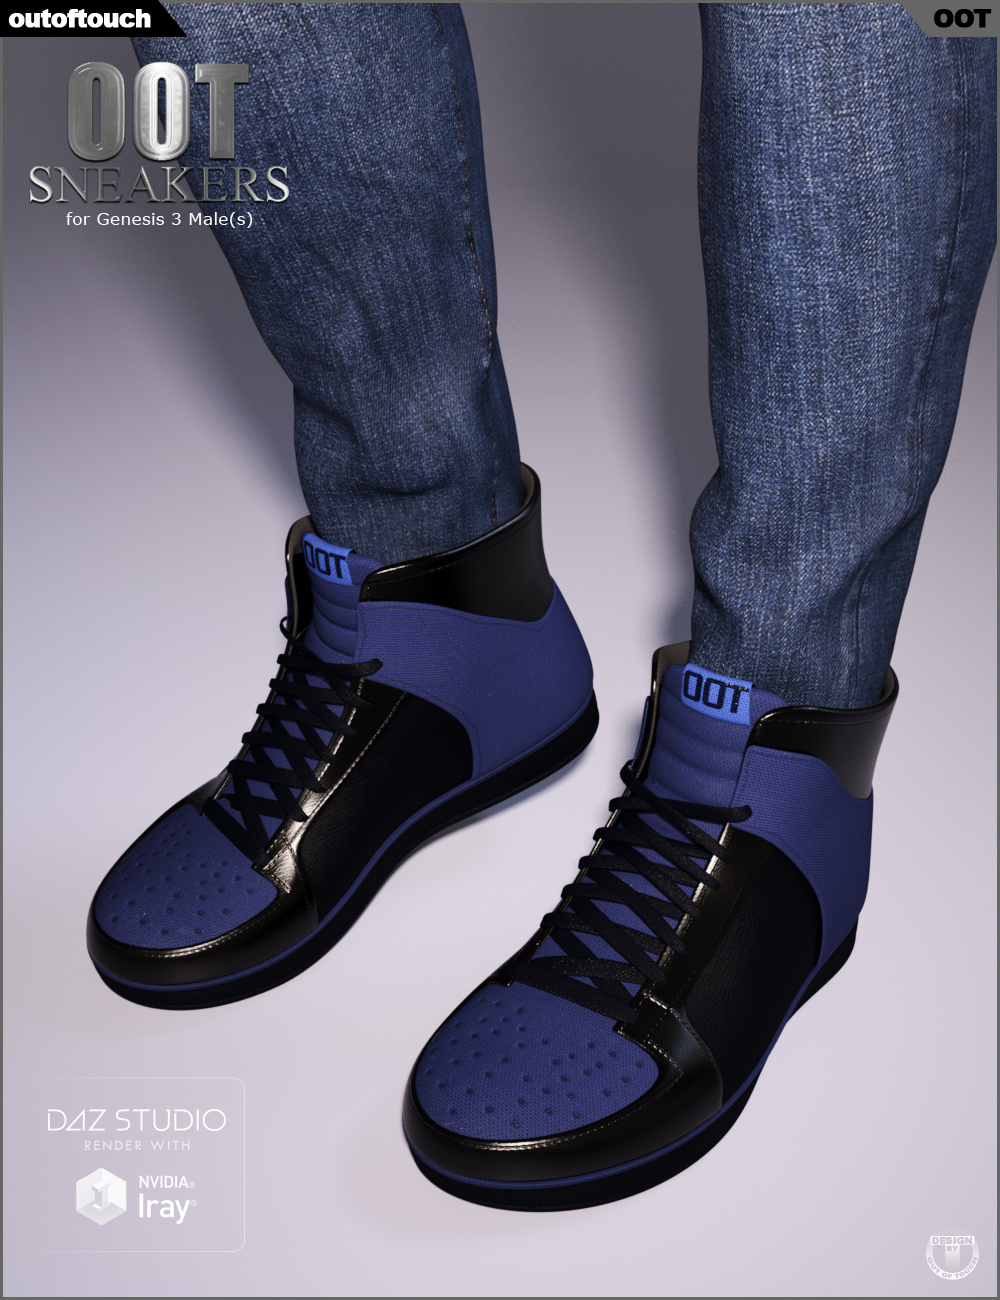 OOT Sneakers for Genesis 3 Male(s) by: outoftouch, 3D Models by Daz 3D